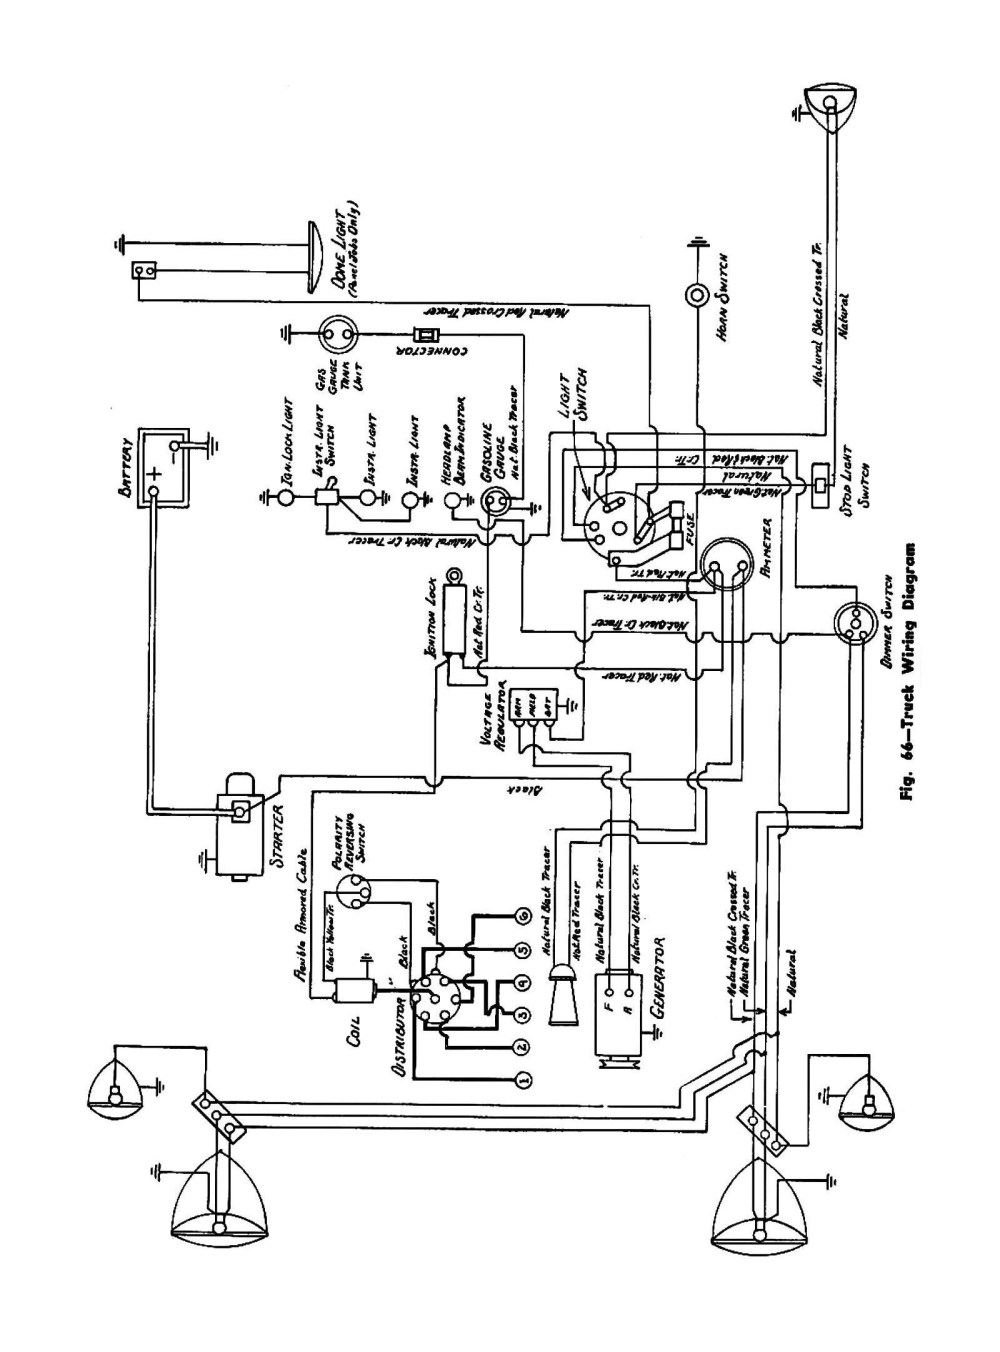 medium resolution of 1948 ford f1 wiring harness diagram wiring diagram tags 1957 ford truck wiring diagram